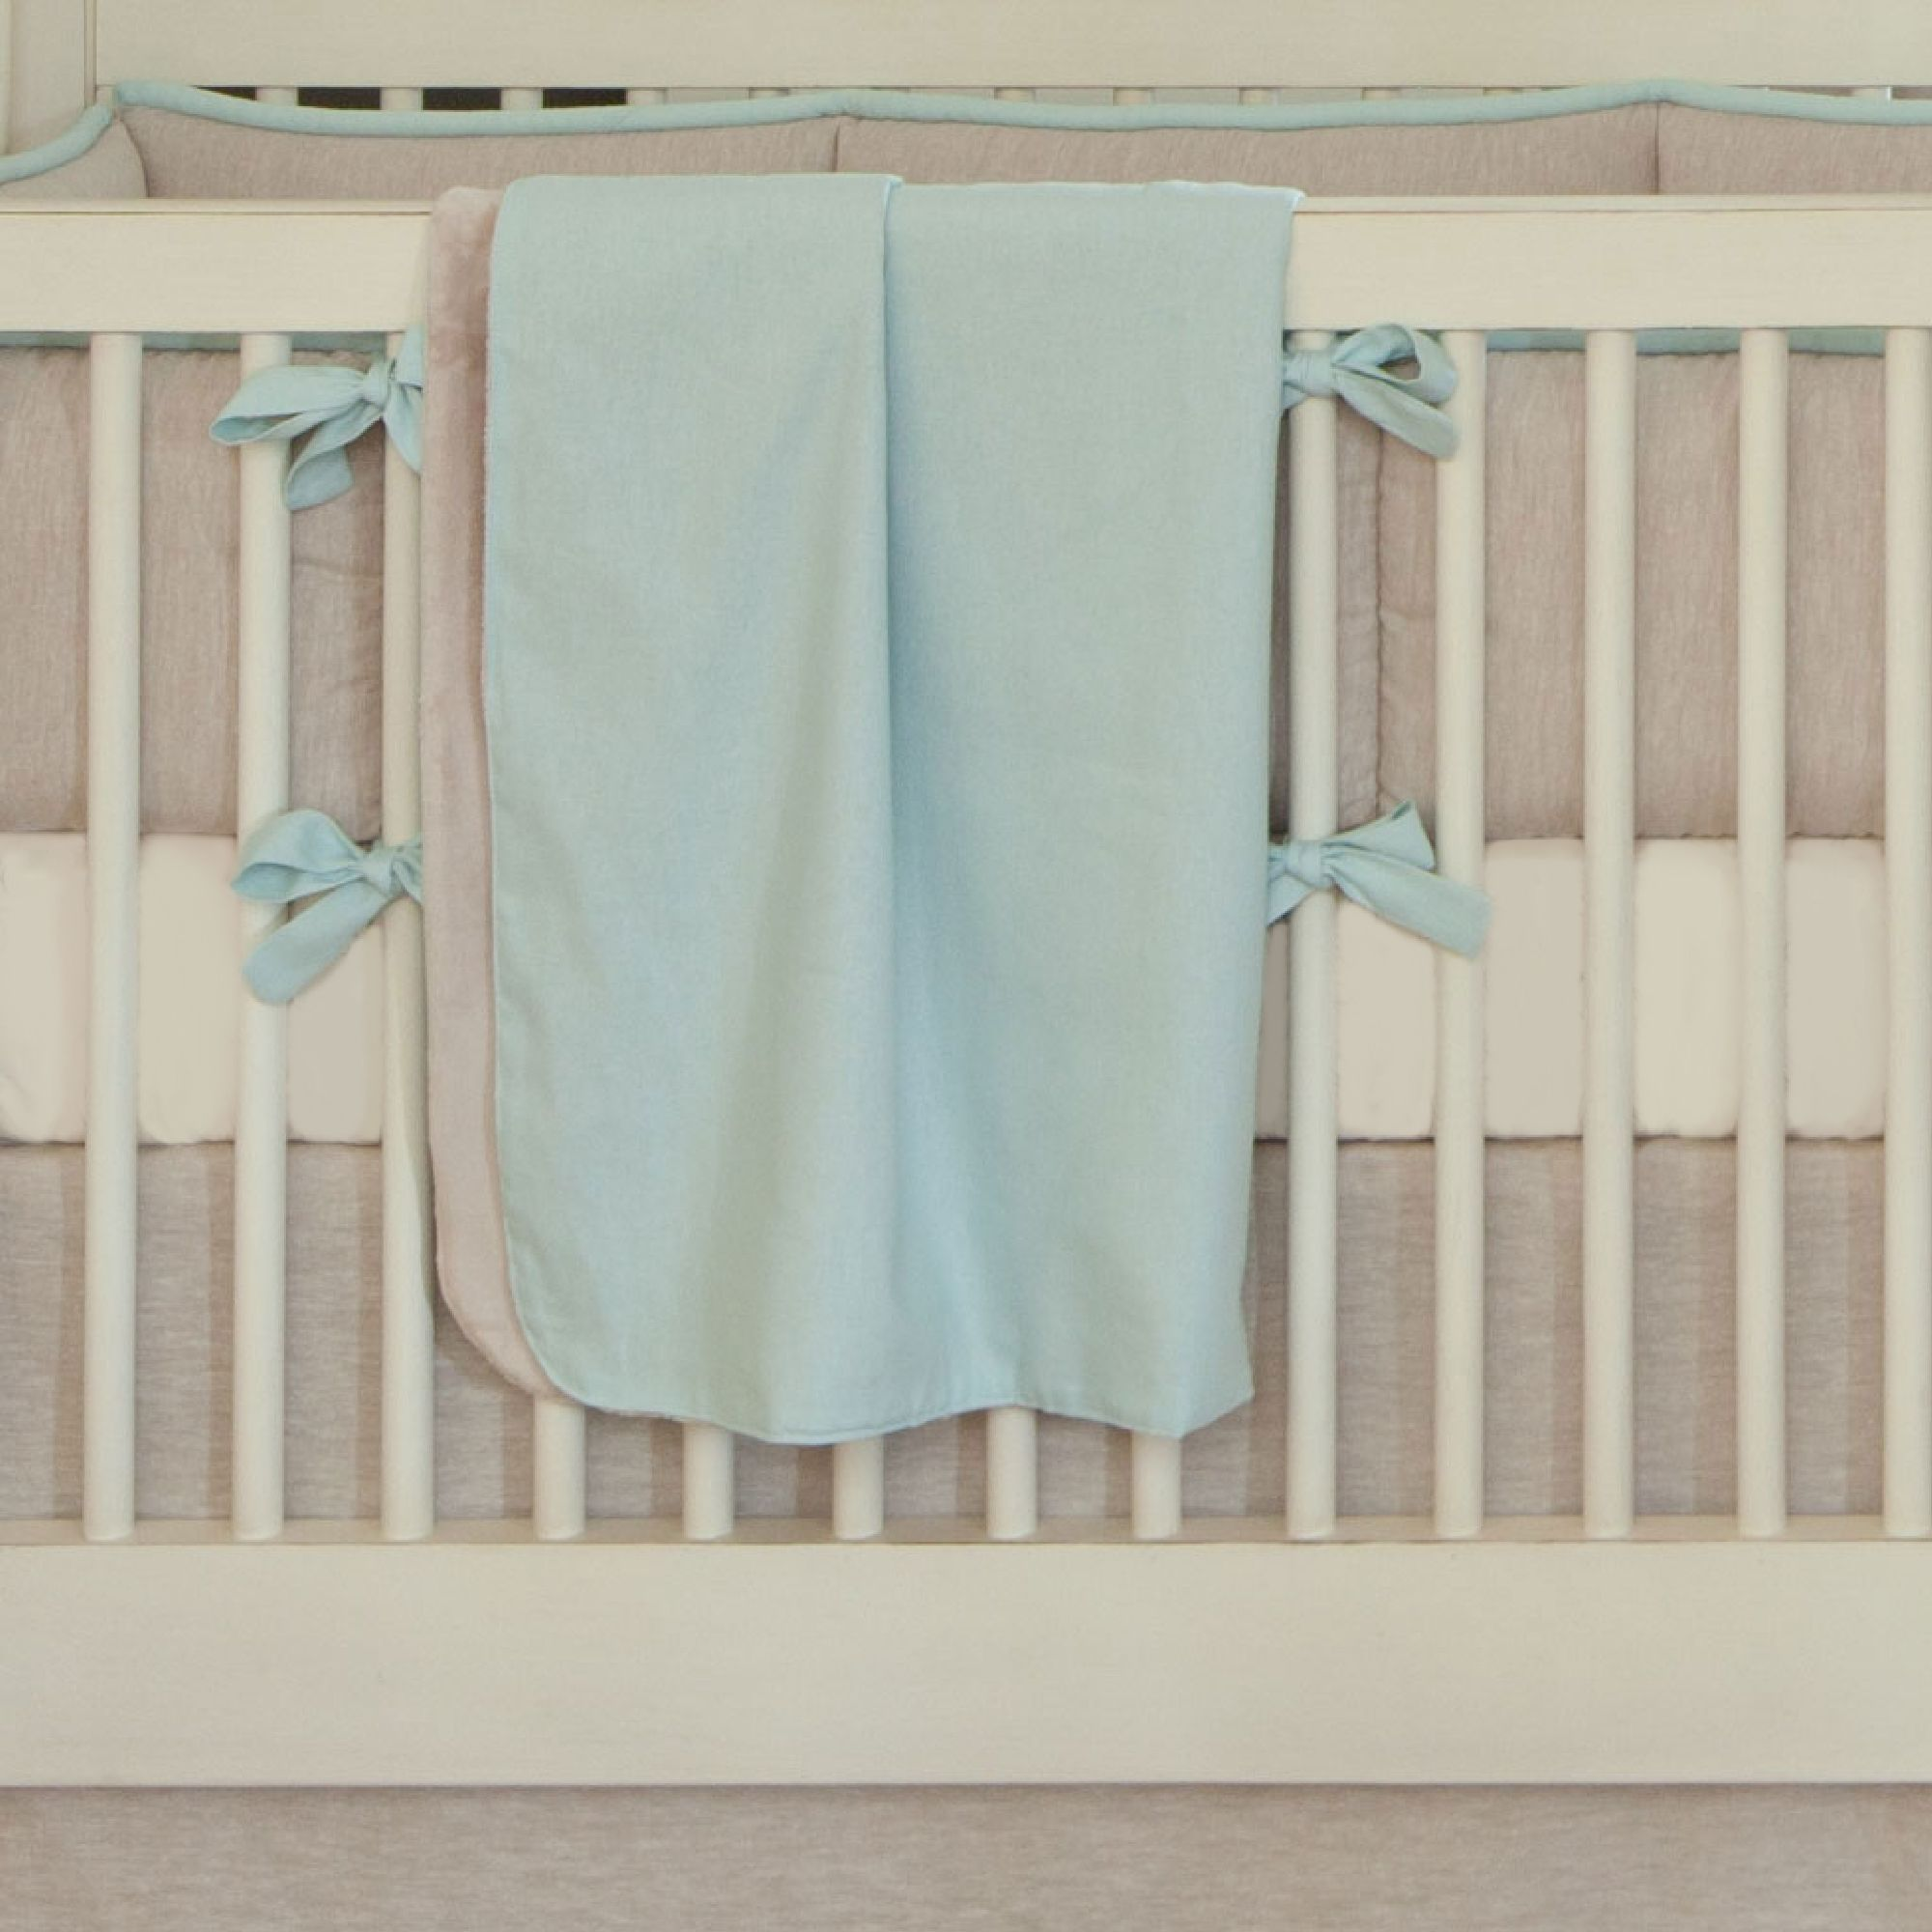 bedding linen madison avenue boutique crib skirt set cribs products and white new jack baby arrivals jill